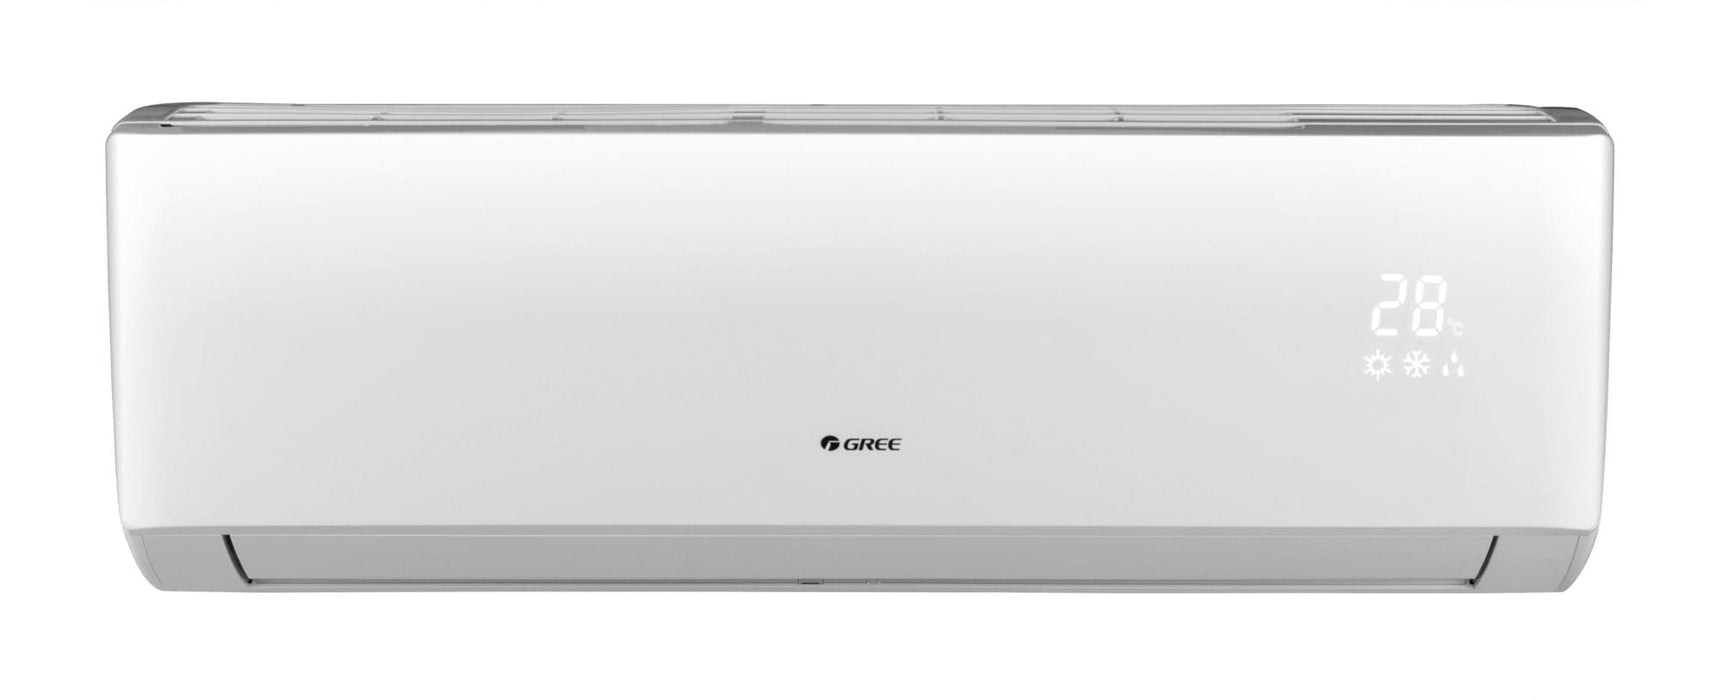 Gree 18,000 BTU 20 SEER VIREO+ Wall Mount Ductless Mini Split Indoor Unit 208-230V